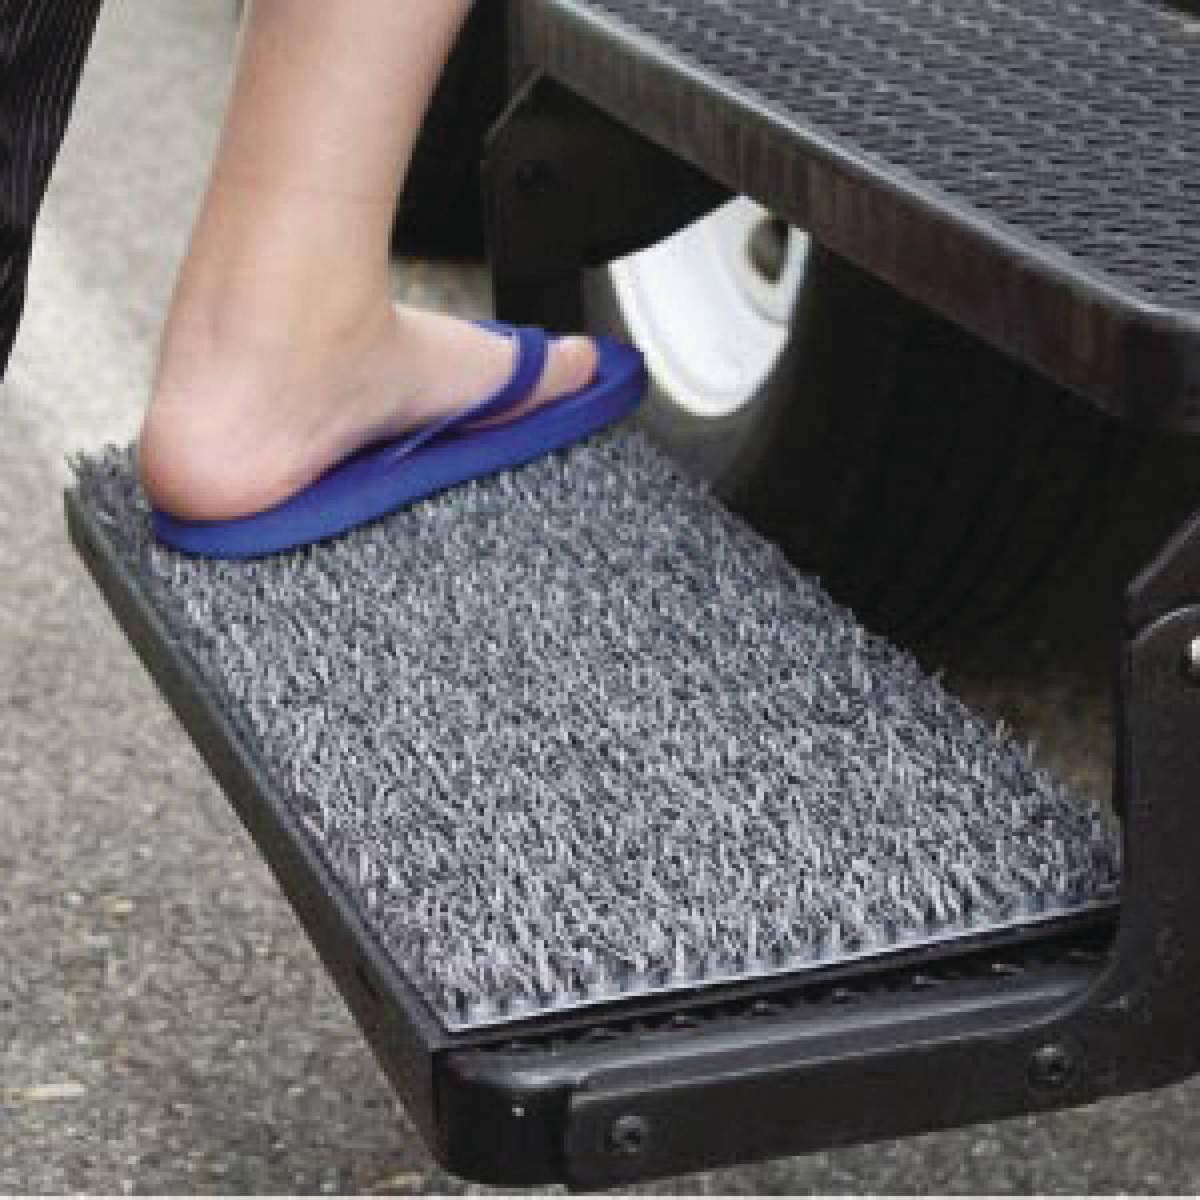 good rv step covers for messy camping and keeping shoes clean